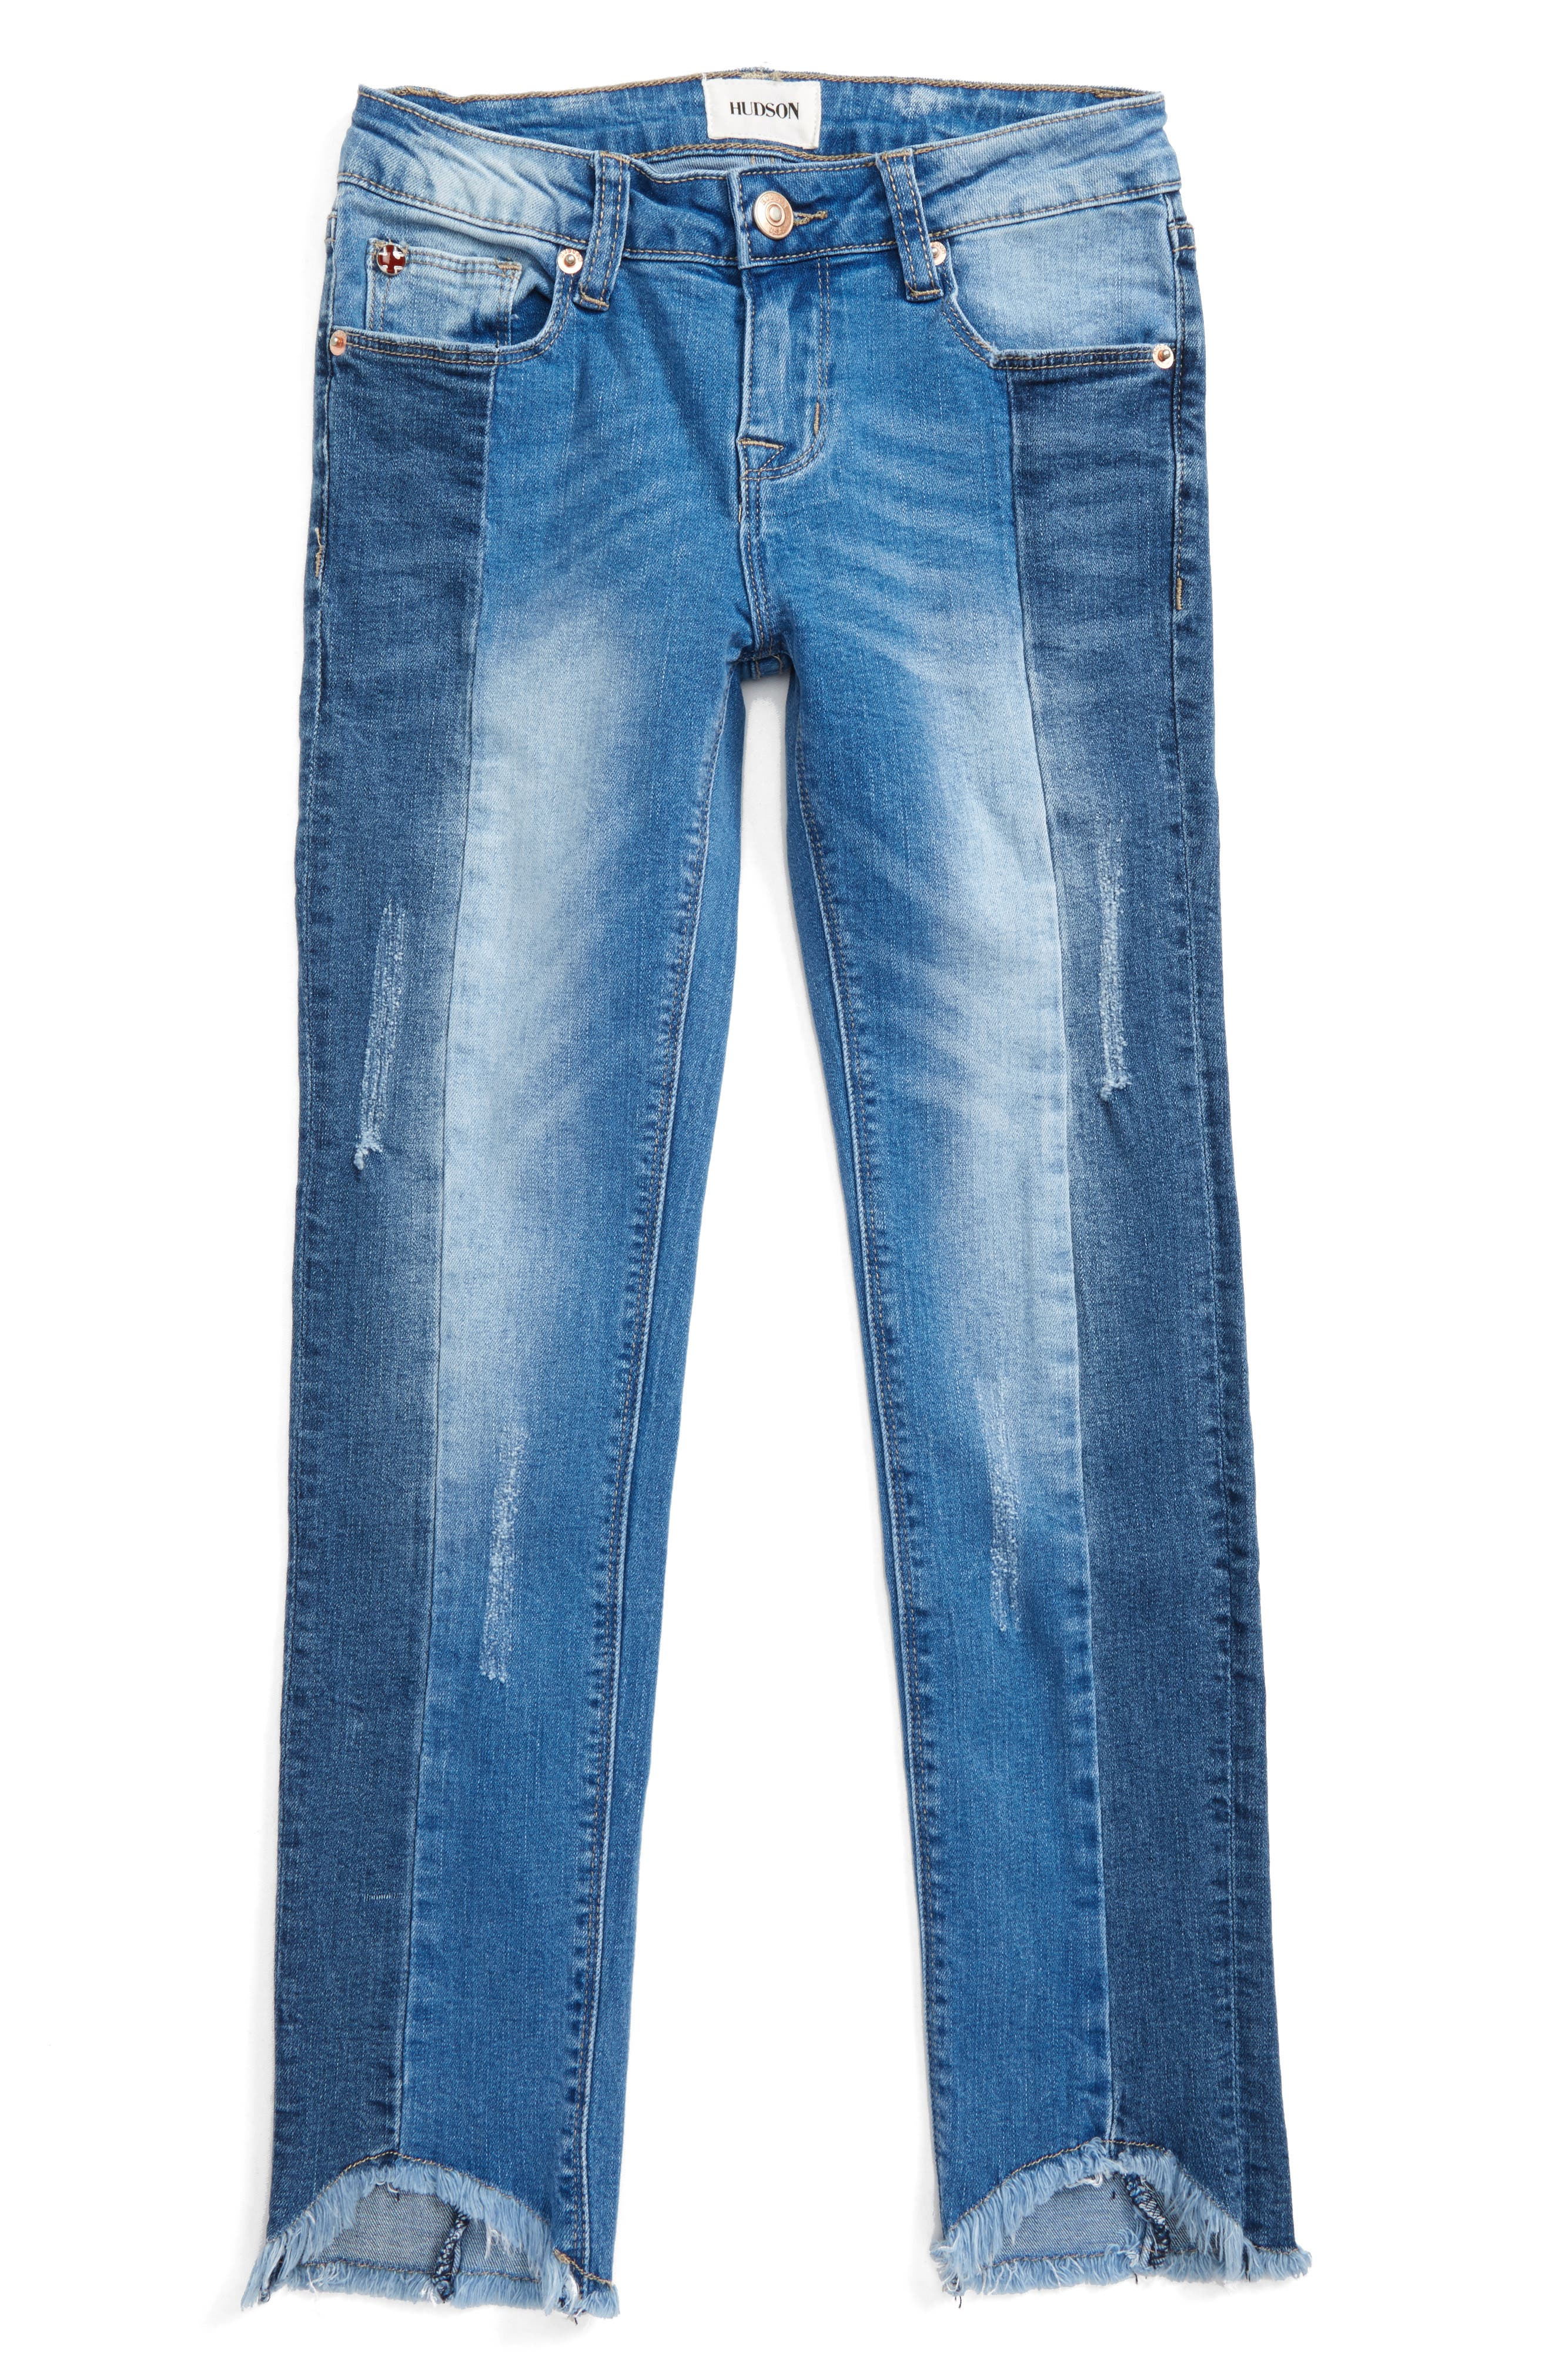 Redone Crop Skinny Jeans,                             Main thumbnail 1, color,                             483